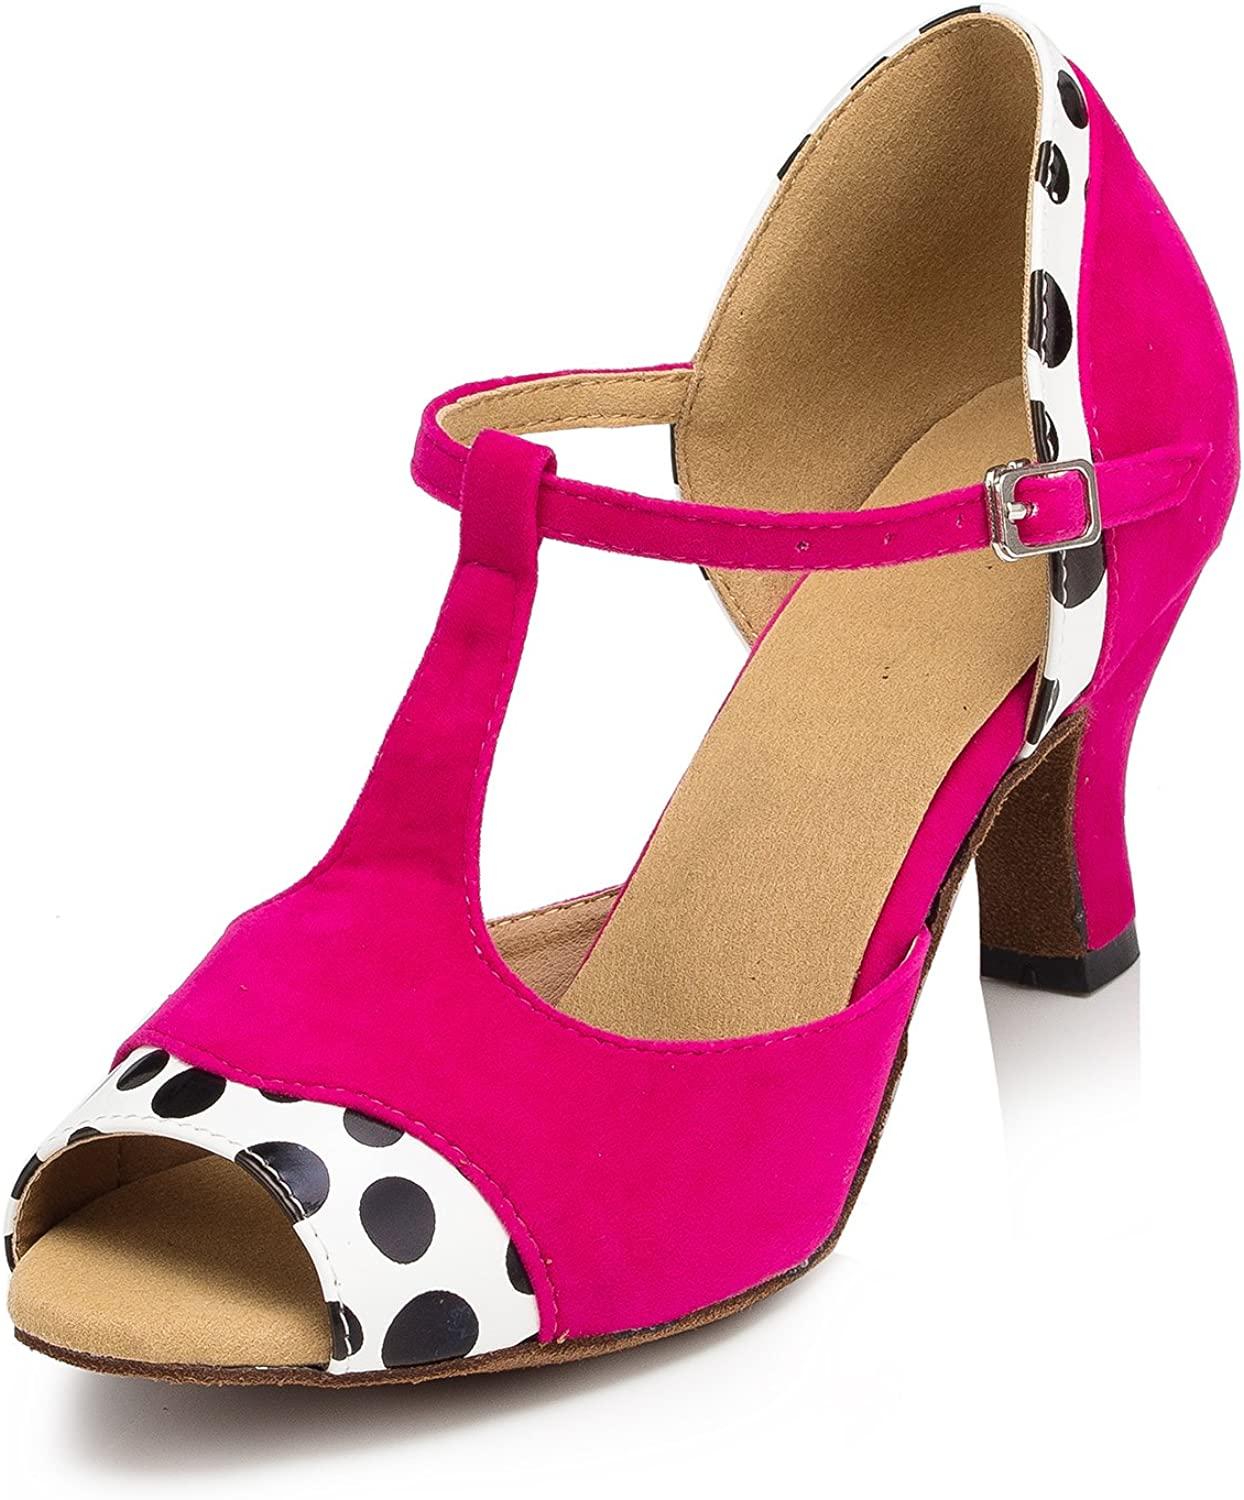 URVIP Women's PU Leather Heels Pumps Modern Latin Tango shoes Cross Ankle Strap Buckle Dance shoes LD040